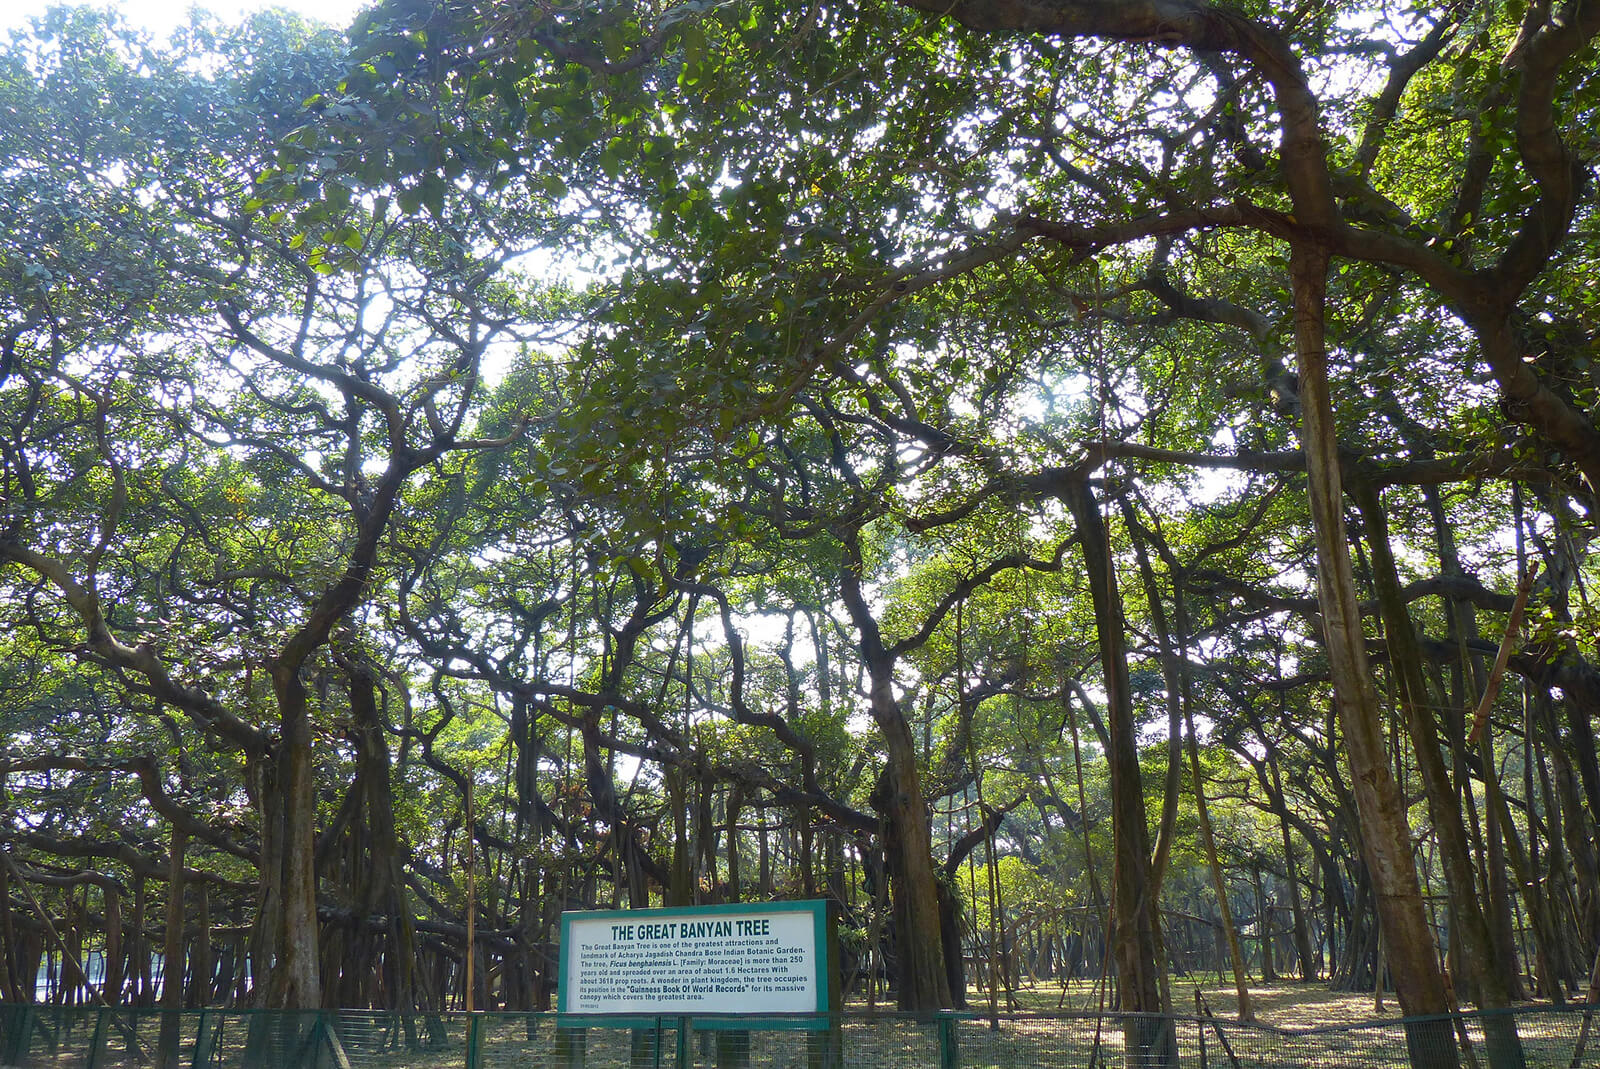 The Great Banyan Tree is not the world's largest tree but the second largest -- another one of the unique and offbeat Kolkata activities